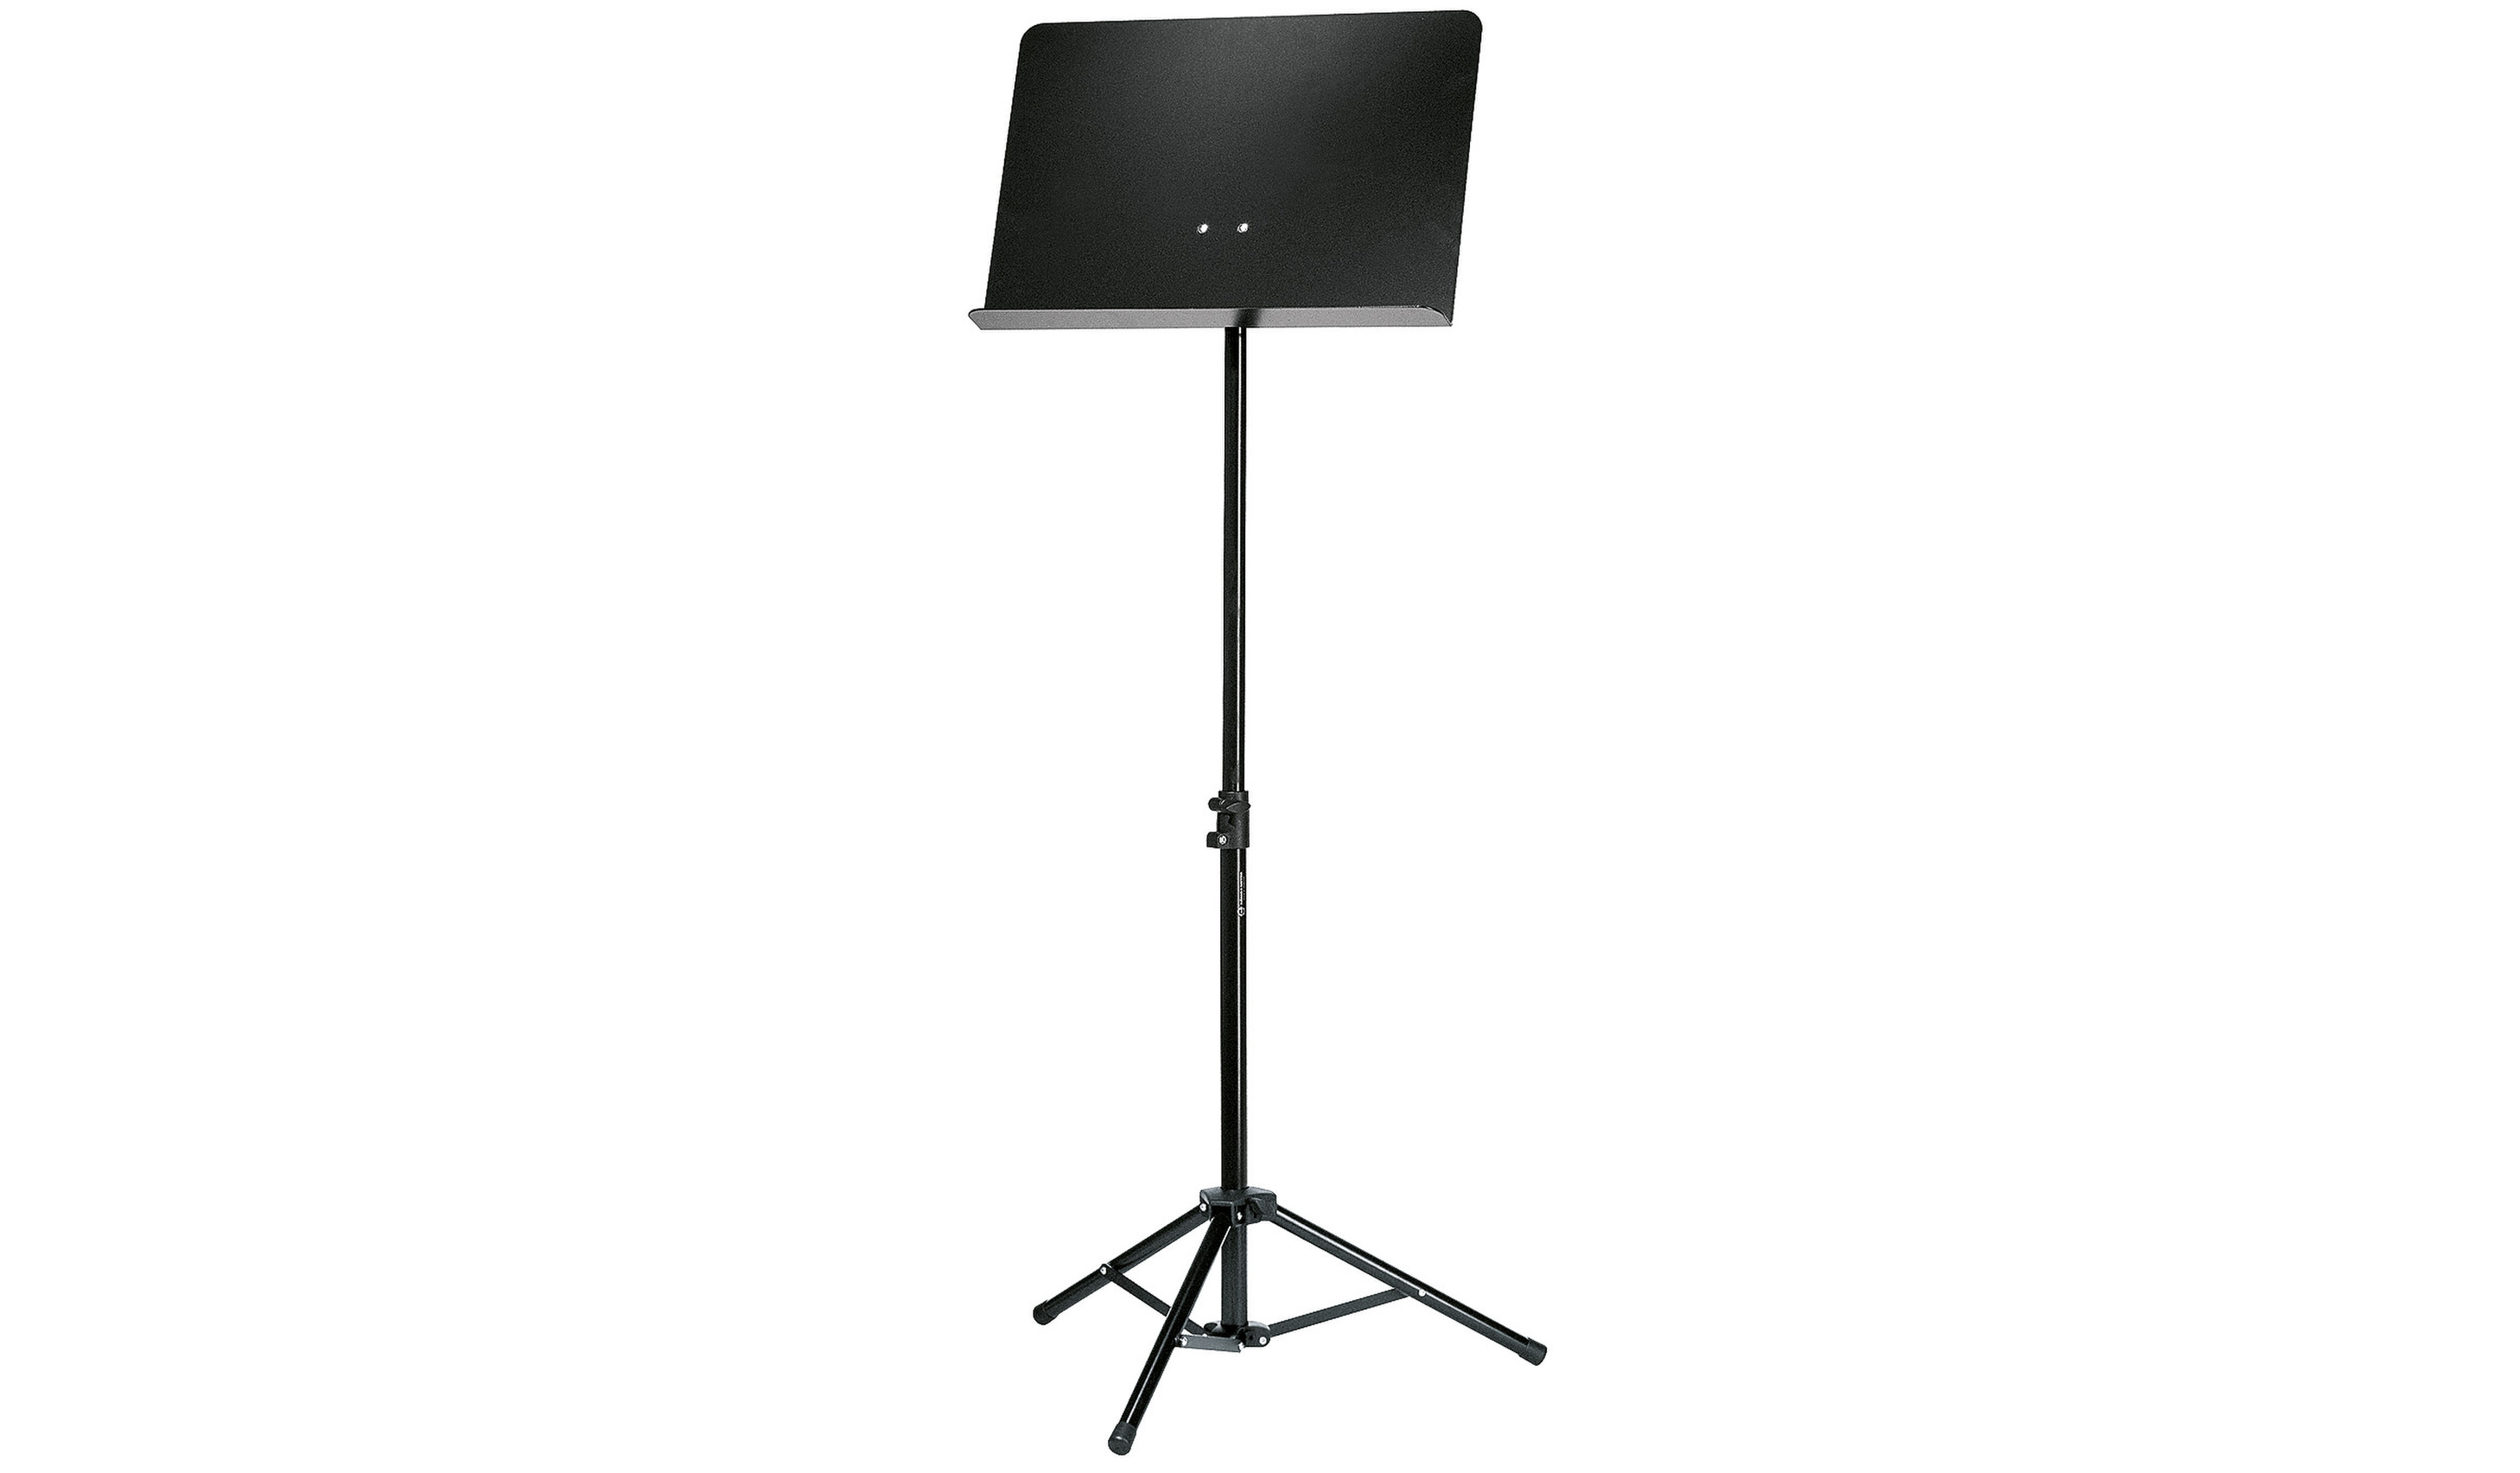 K&M Starline Orchestral Music Stand (model: 11888)